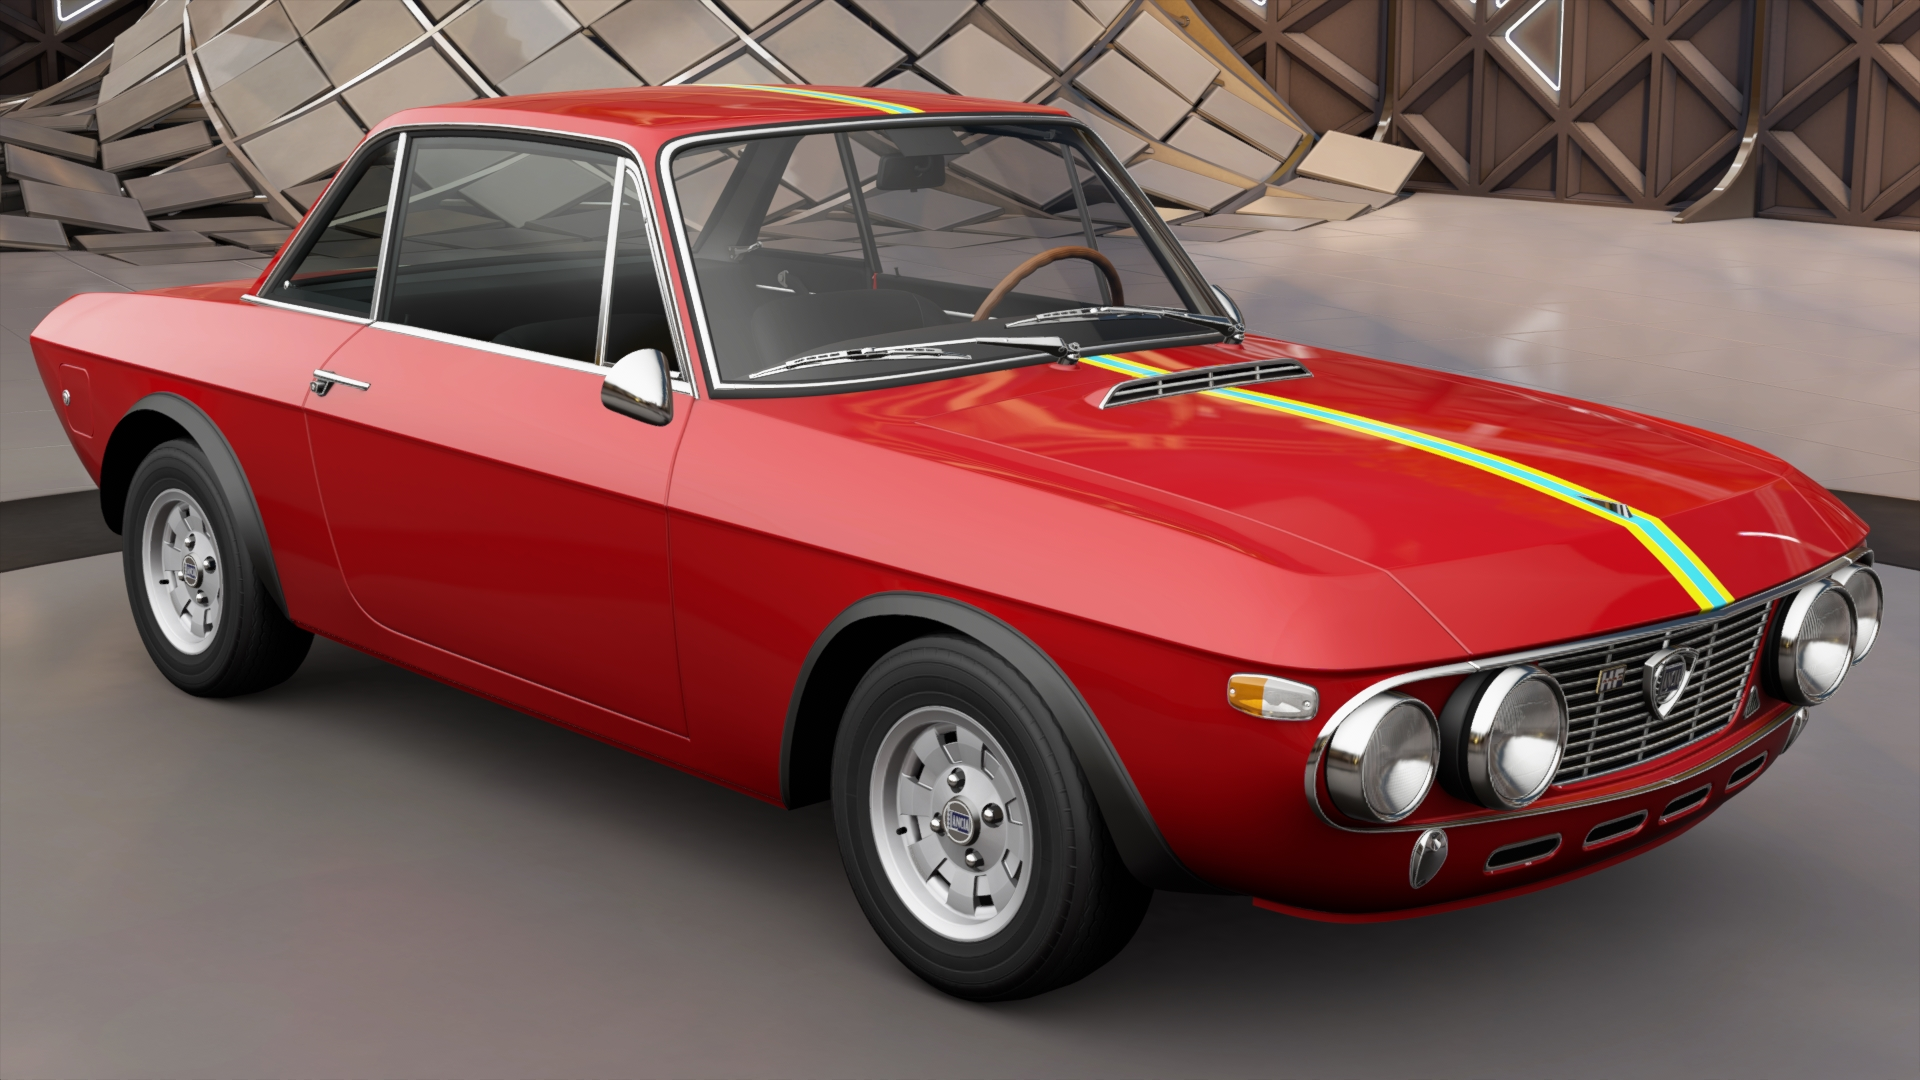 lancia fulvia coup rallye 1 6 hf forza motorsport wiki fandom powered by wikia. Black Bedroom Furniture Sets. Home Design Ideas